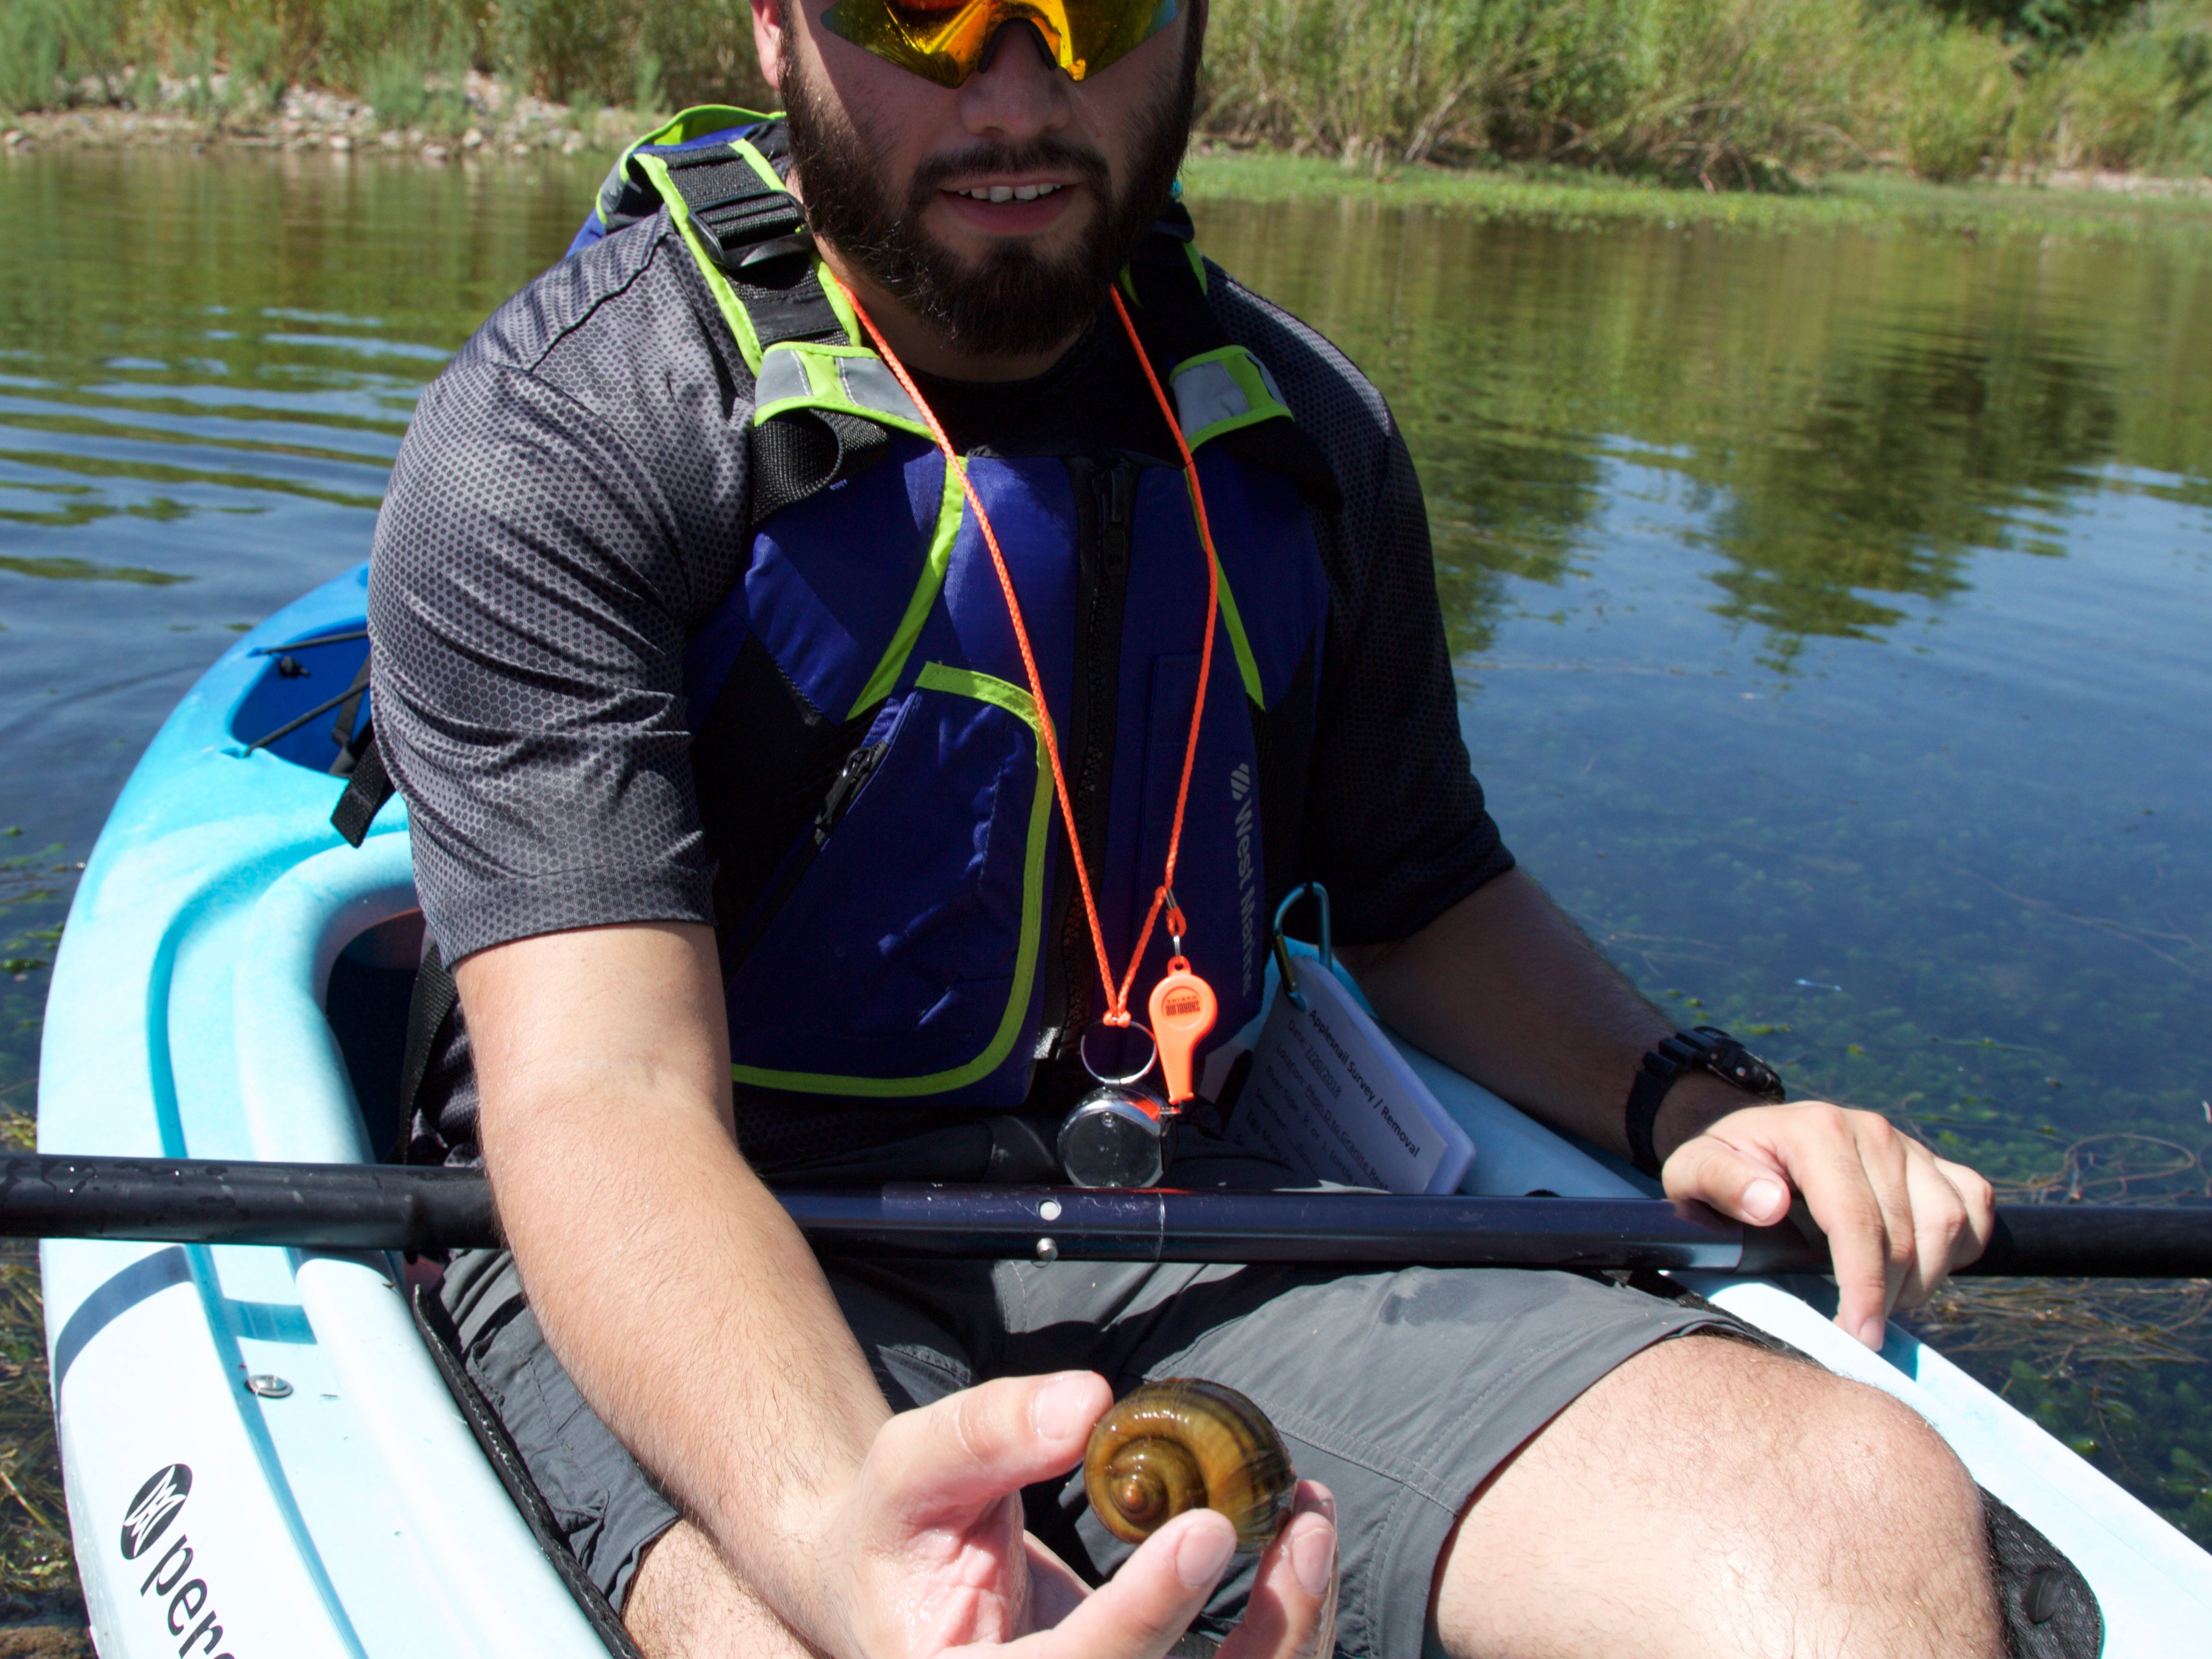 Israel Garcia, a biologist at the Arizona Game and Fish Department, pulls an invasive apple snail from the backwaters of the Salt River on July 20, 2018.